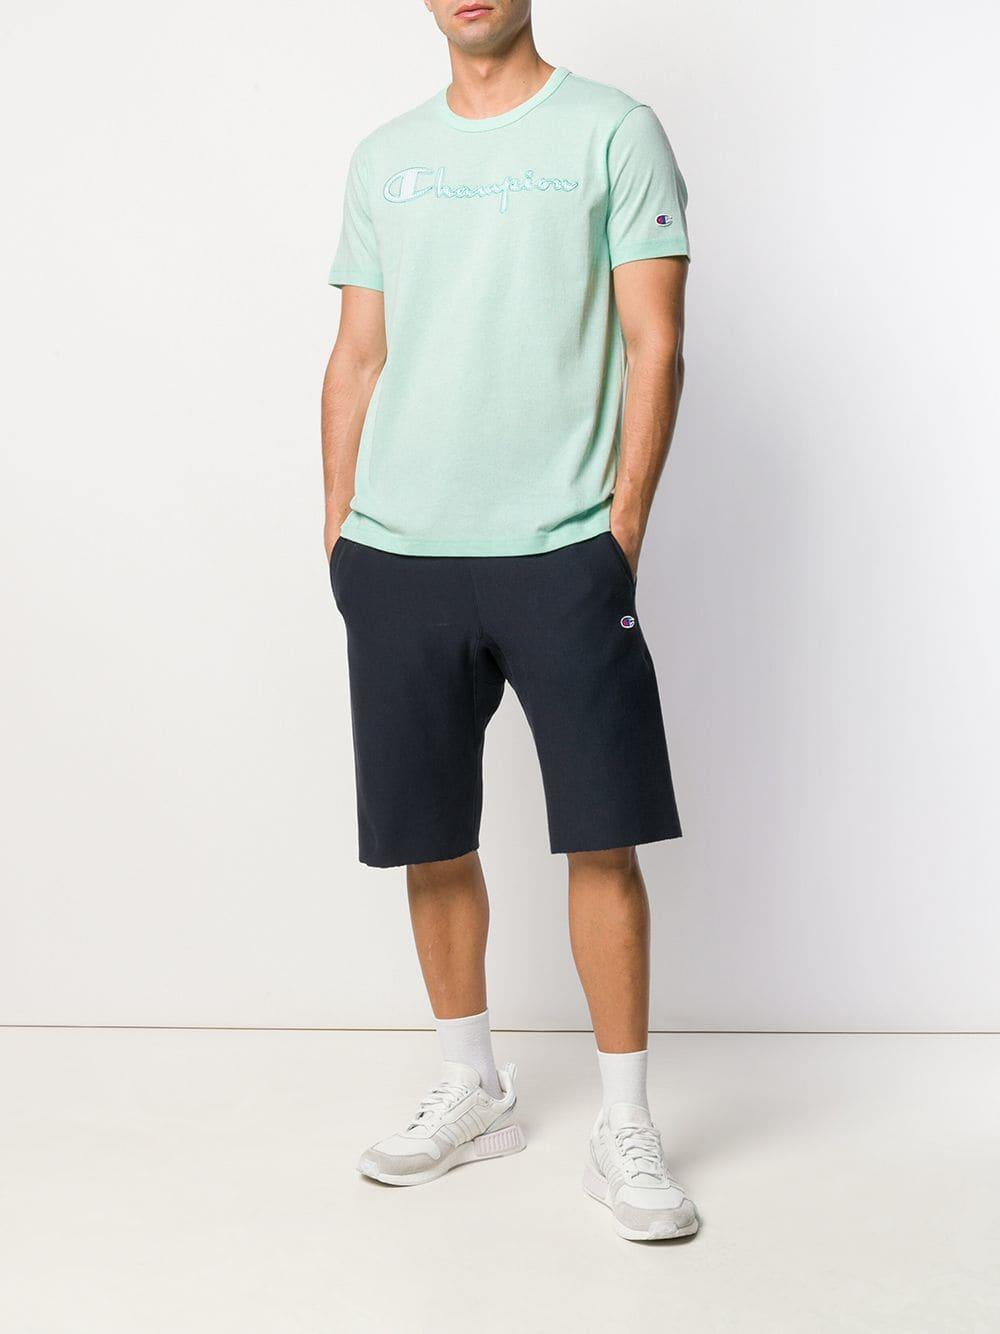 aa0ccd14 Champion Logo T-shirt in Green for Men - Lyst